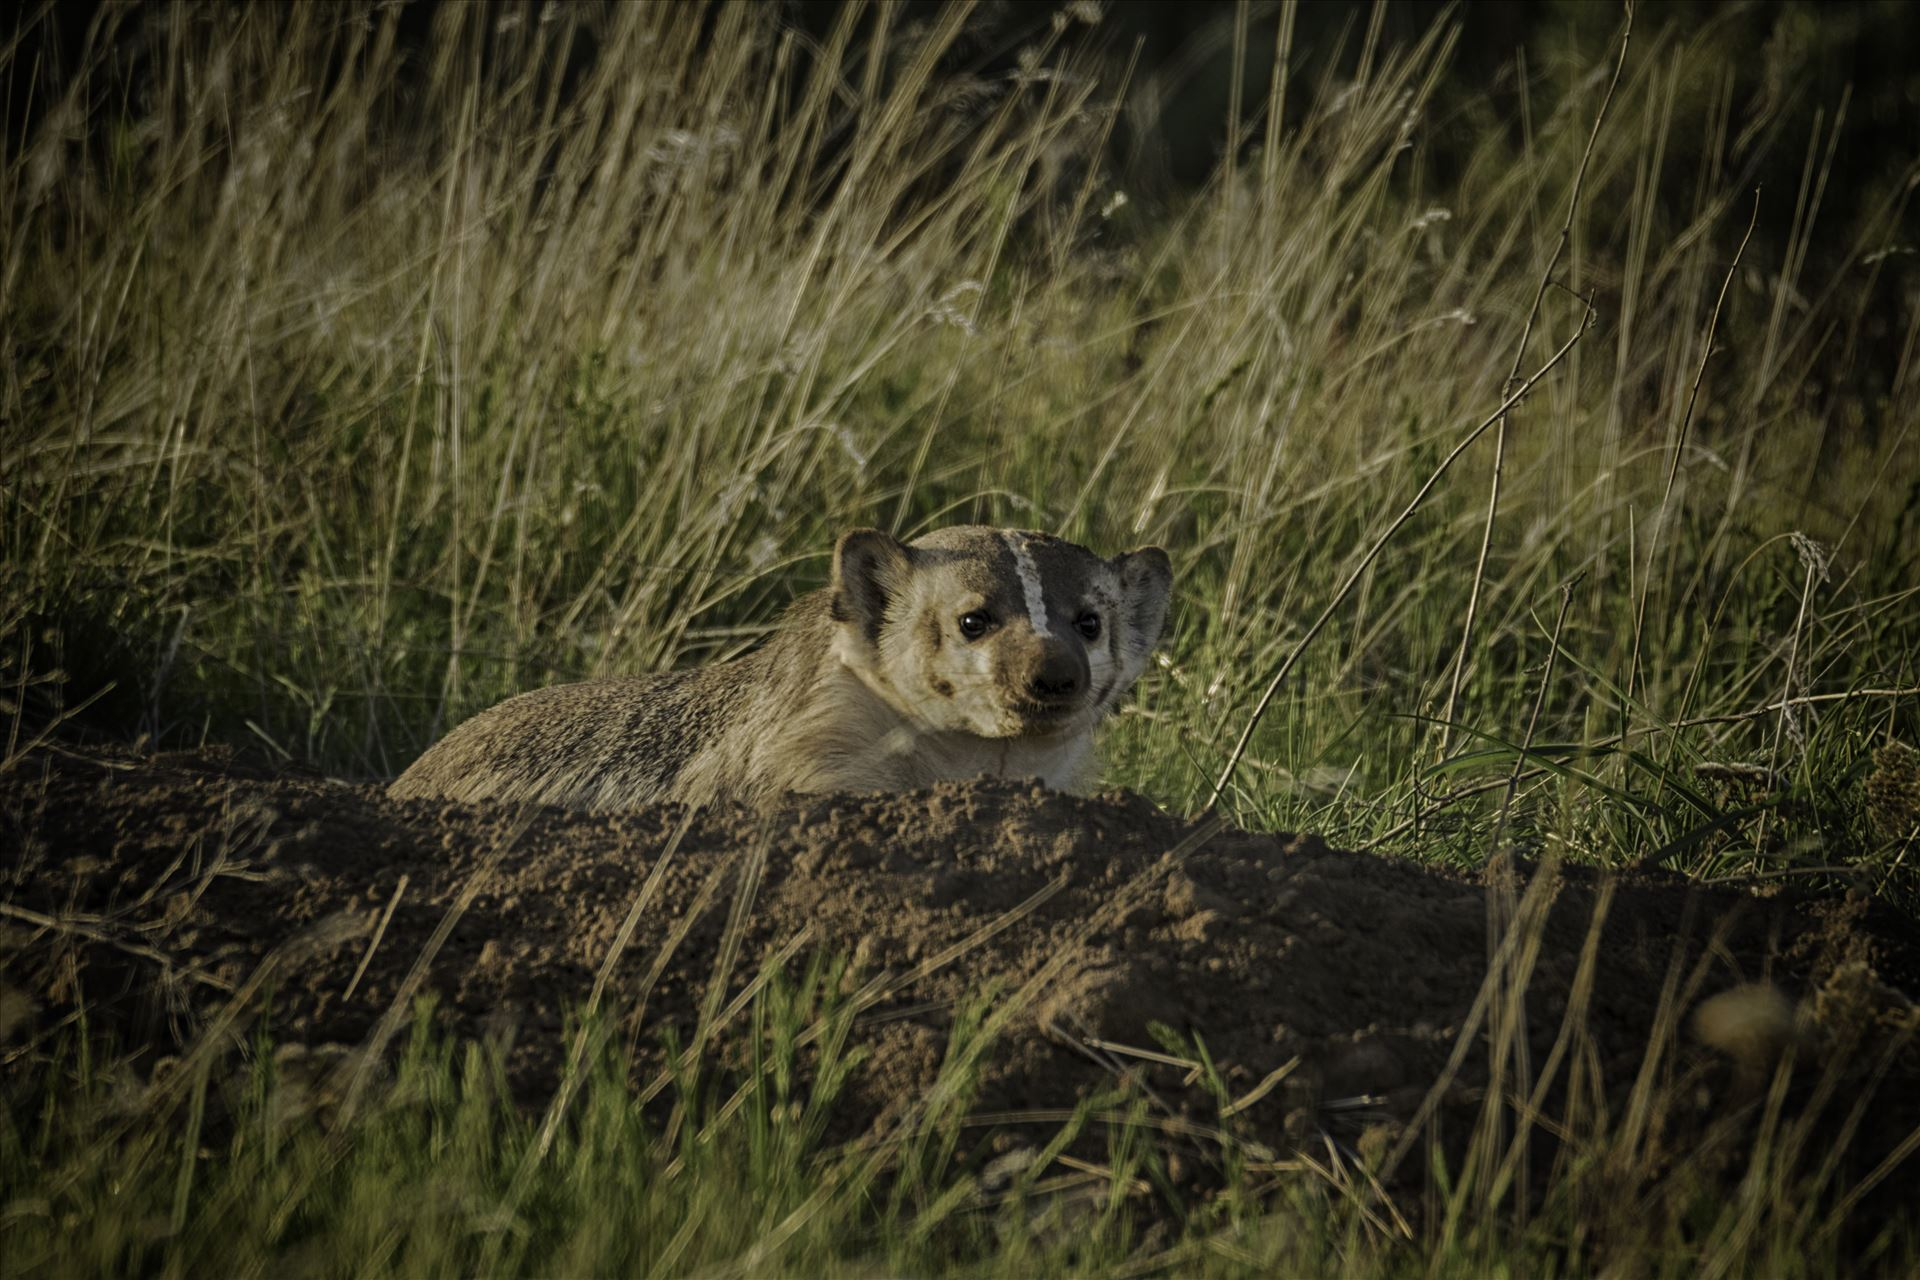 Badger 6Z6A1359.jpg - Badger digging his den out in the spring. by Bear Conceptions Photography